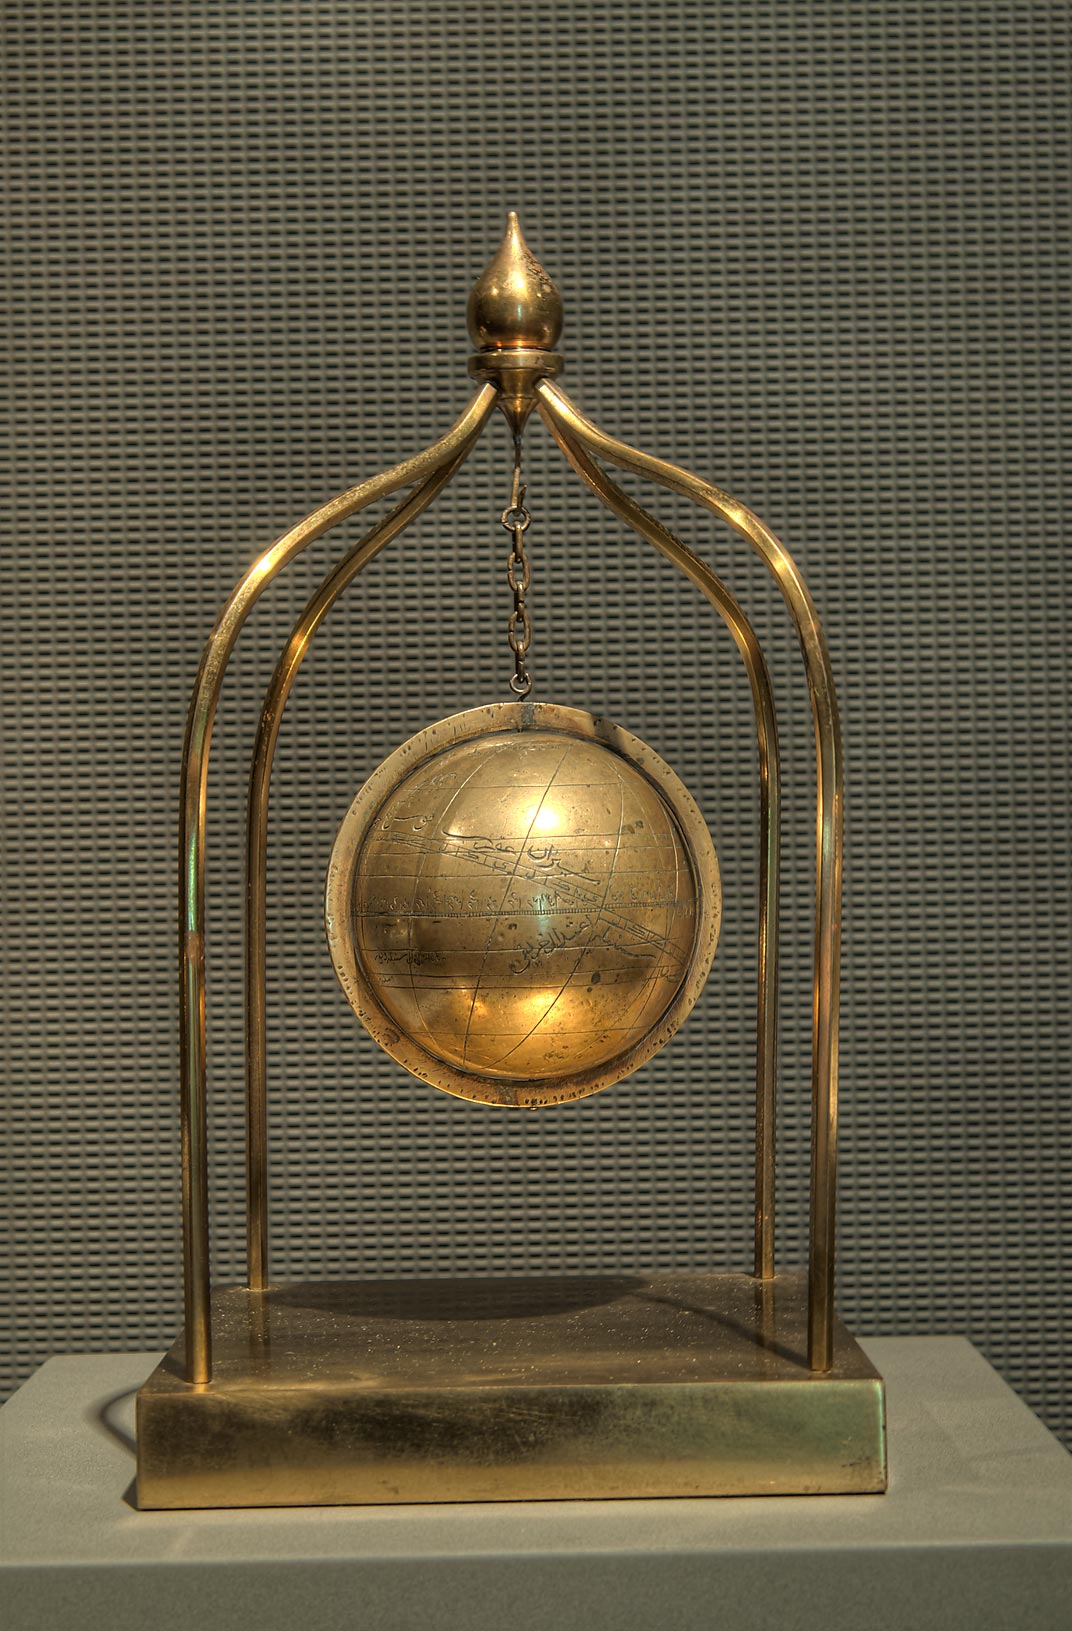 Celestial globe (India, 17th century, brass) on...in Museum of Islamic Art. Doha, Qatar